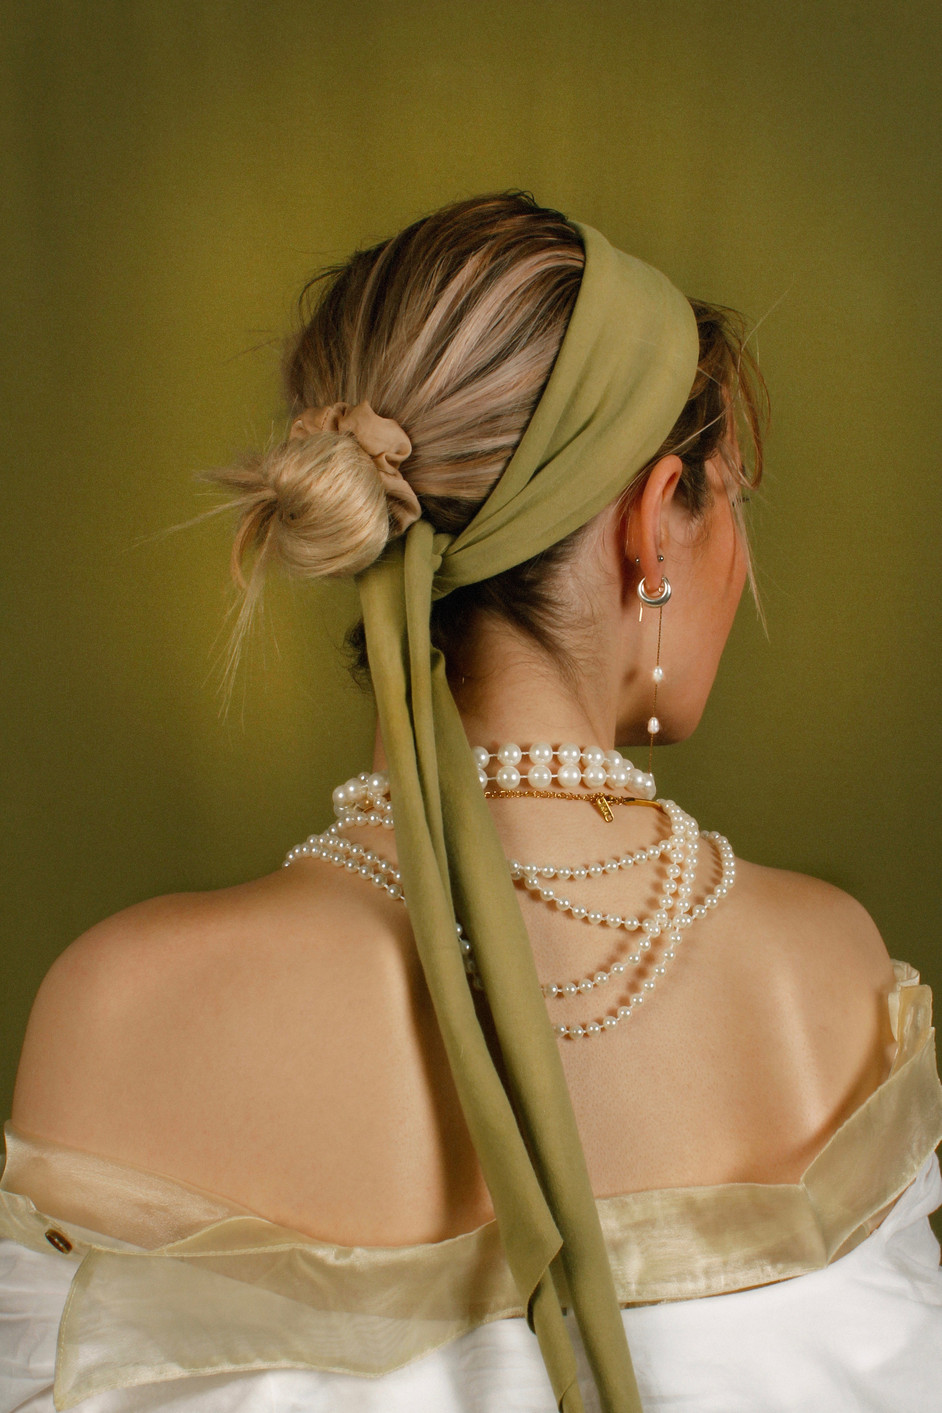 The Girl With The Pearls